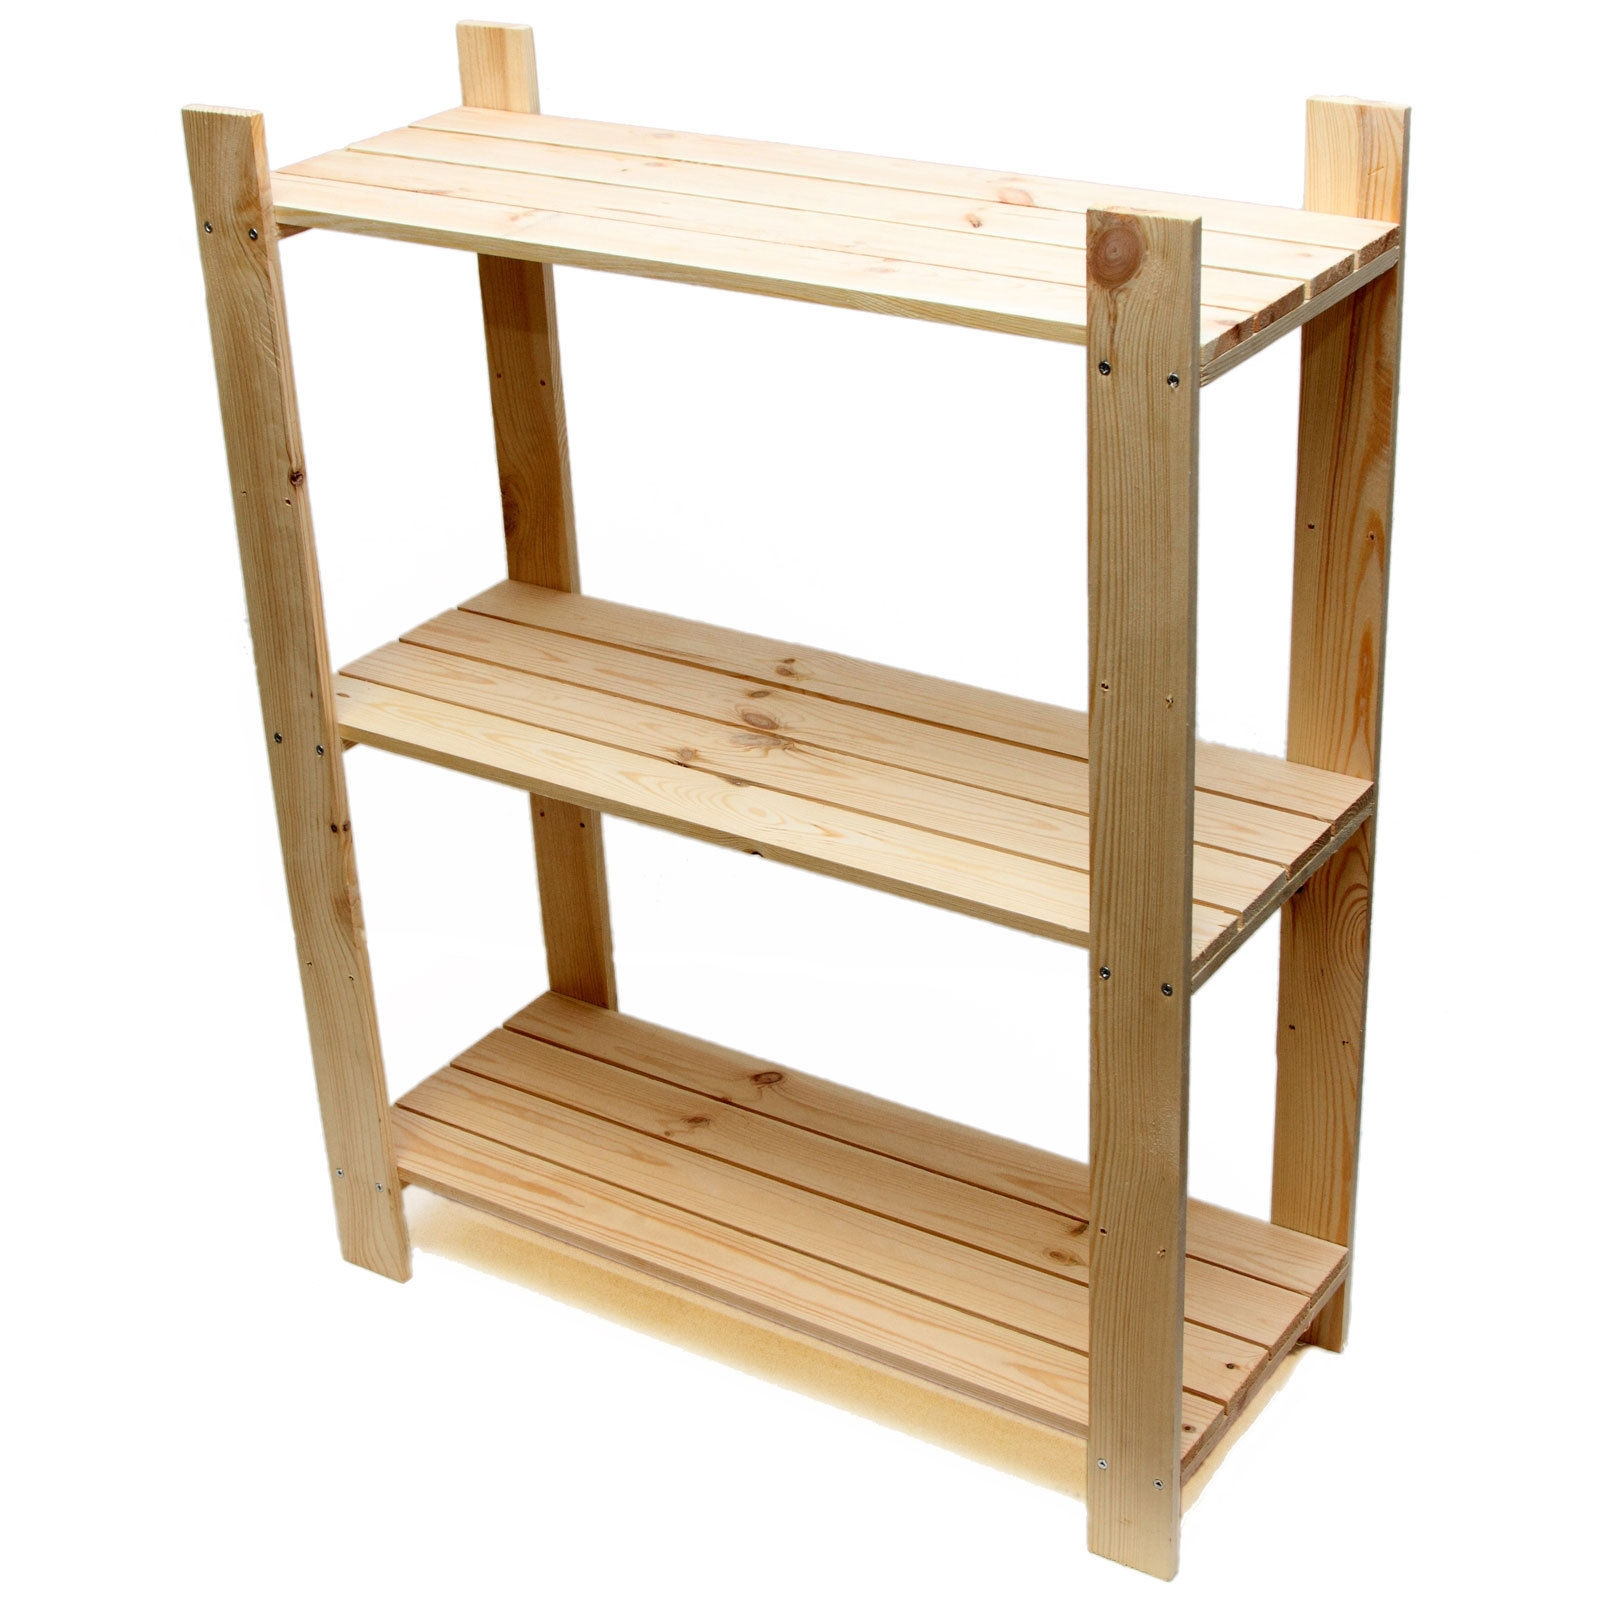 3 Tier Pine Shelf Unit Pine Shelves With 3 Wooden Shelves For Free Standing Shelving Units Wood (View 3 of 15)